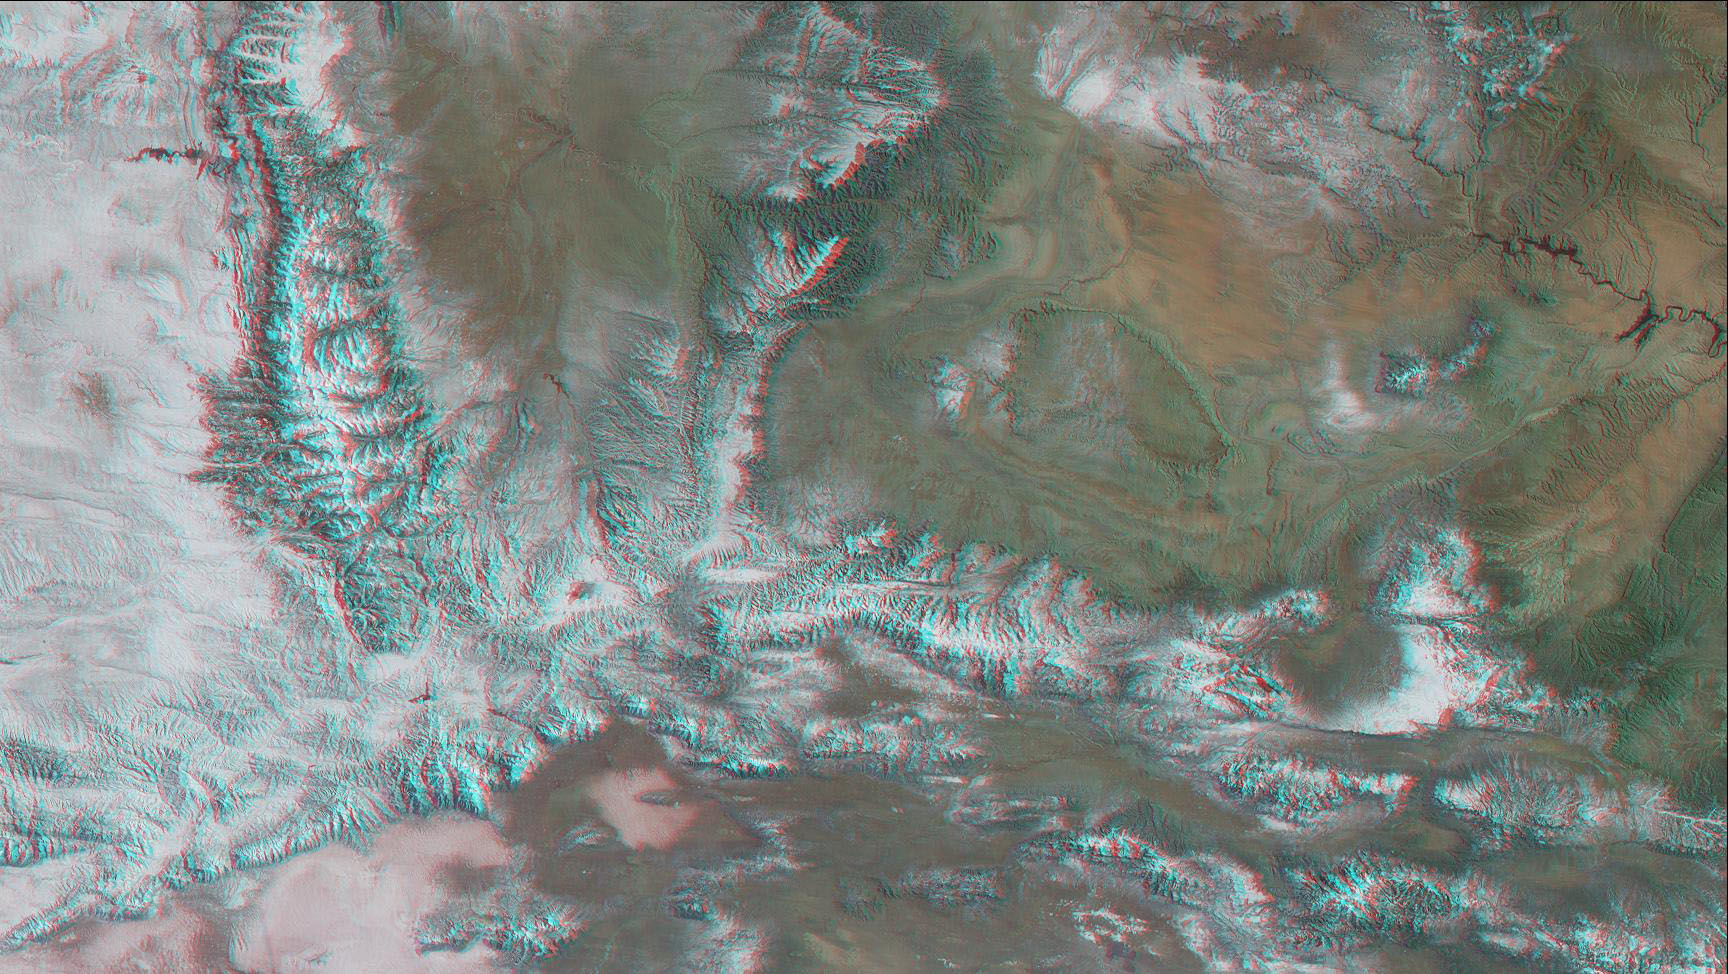 This anaglyph from the MISR instrument aboard NASA's Terra spacecraft shows the peaks of the Wasatch and Uinta Ranges in Utah. 3D glasses are necessary to view this image.